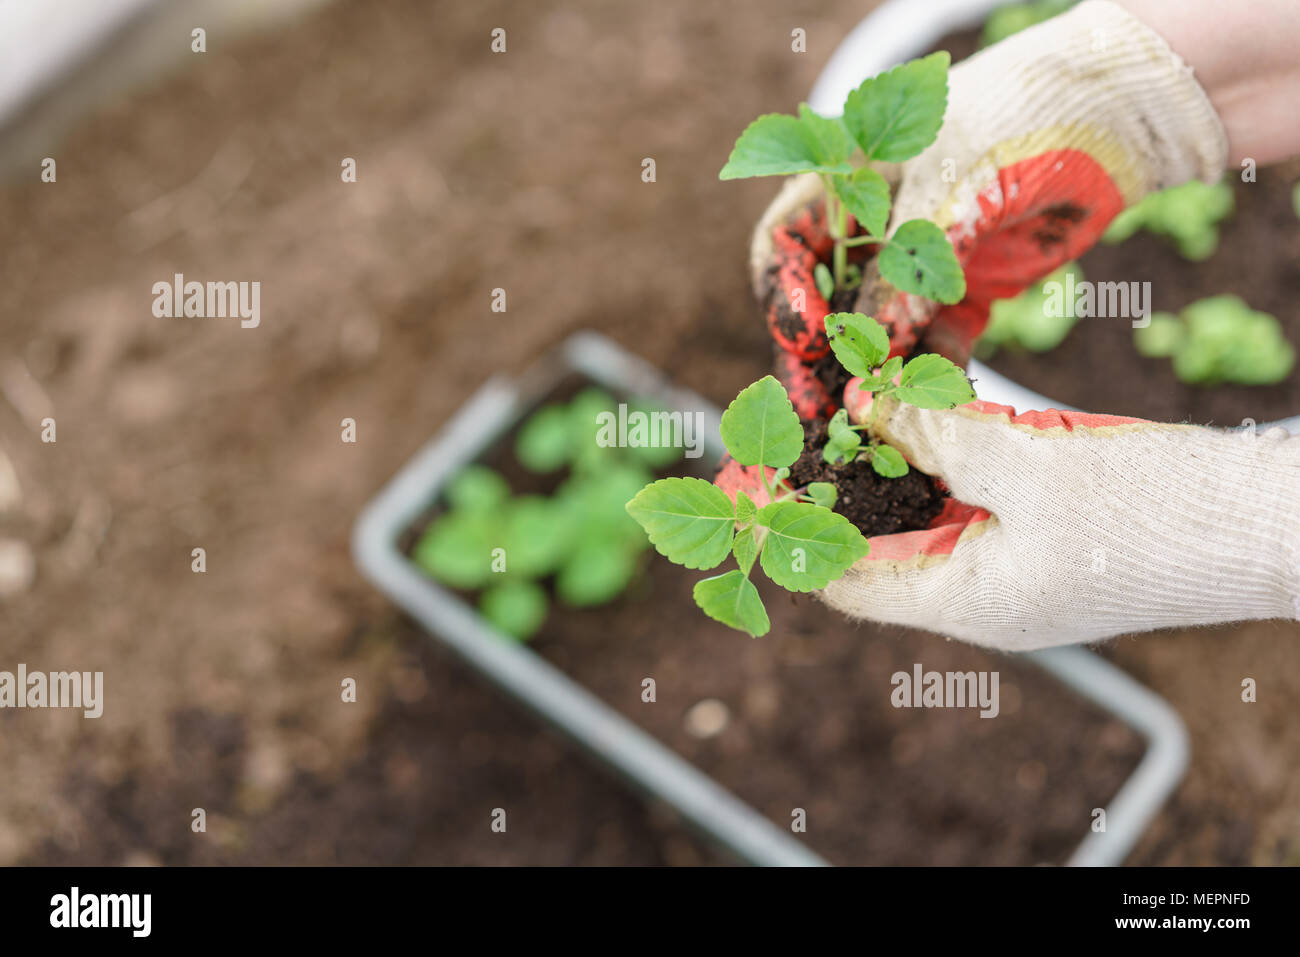 Hands holding beautiful purple basil plants with ground and